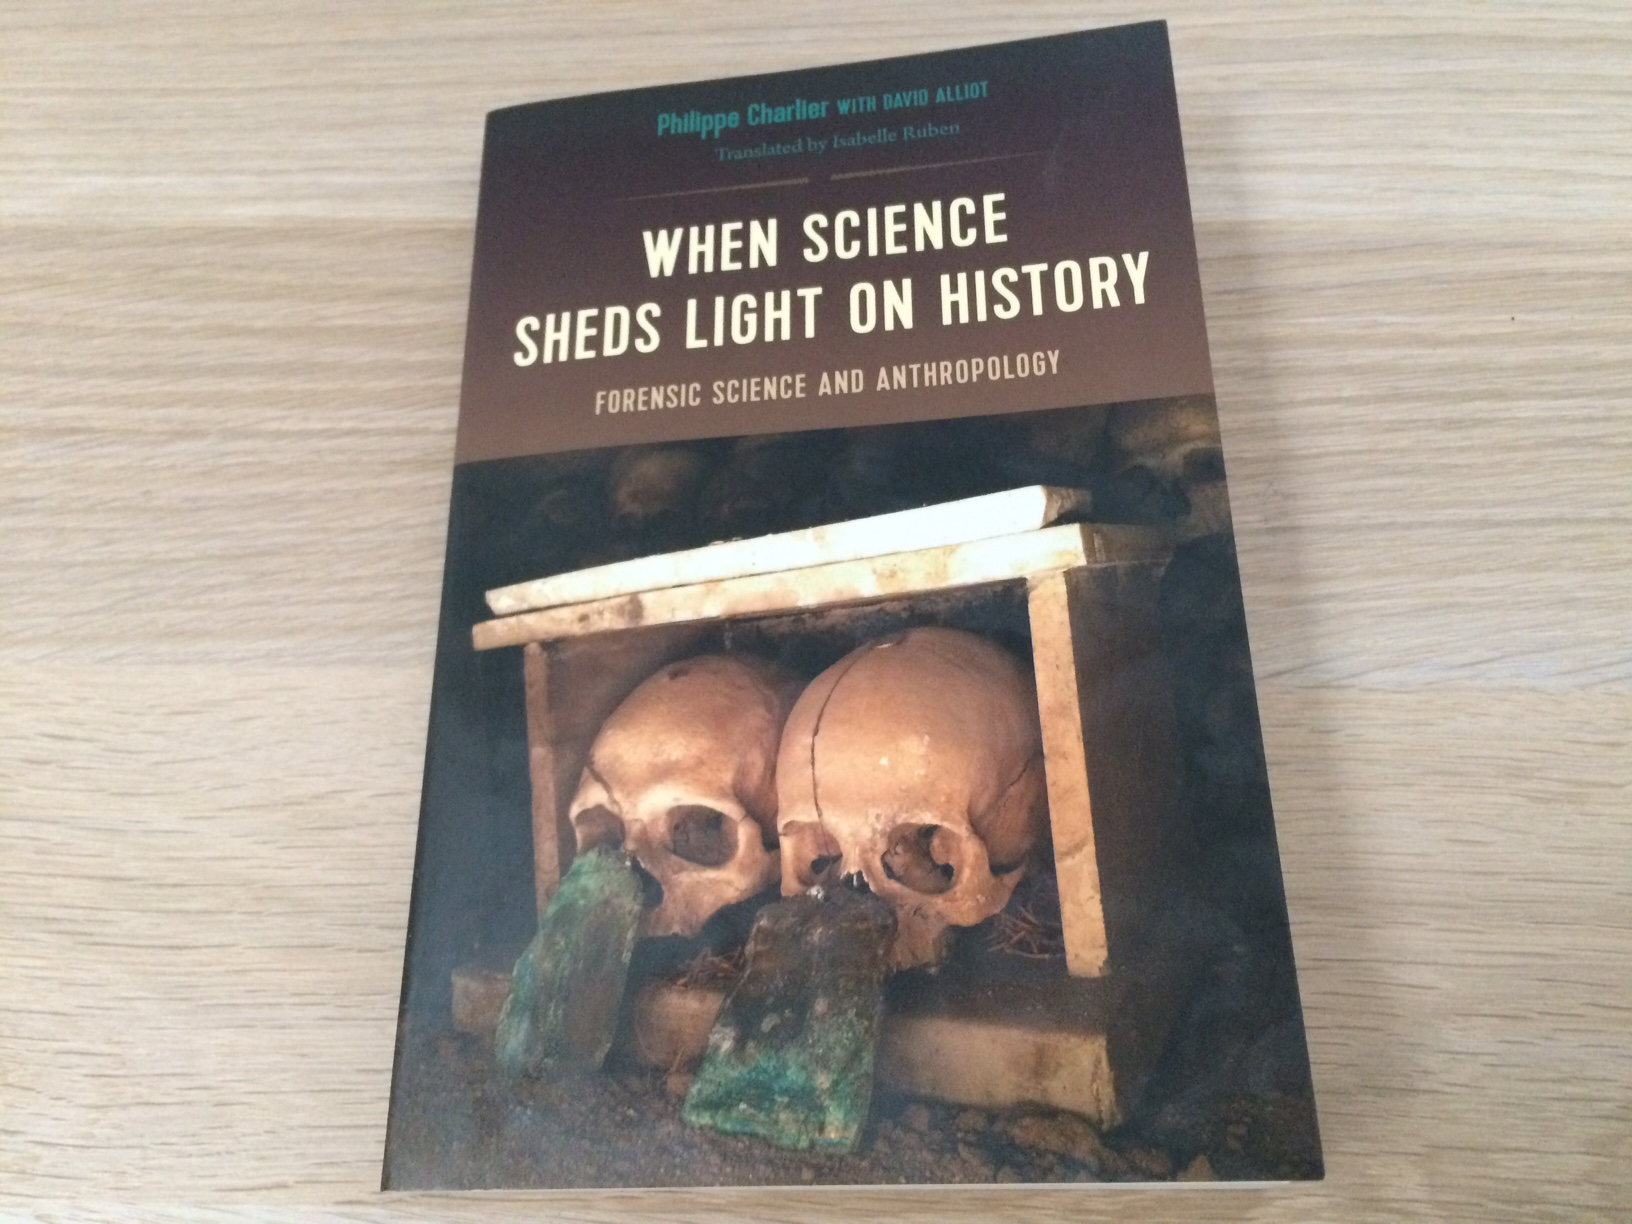 When Science Sheds Light on History - Book Review